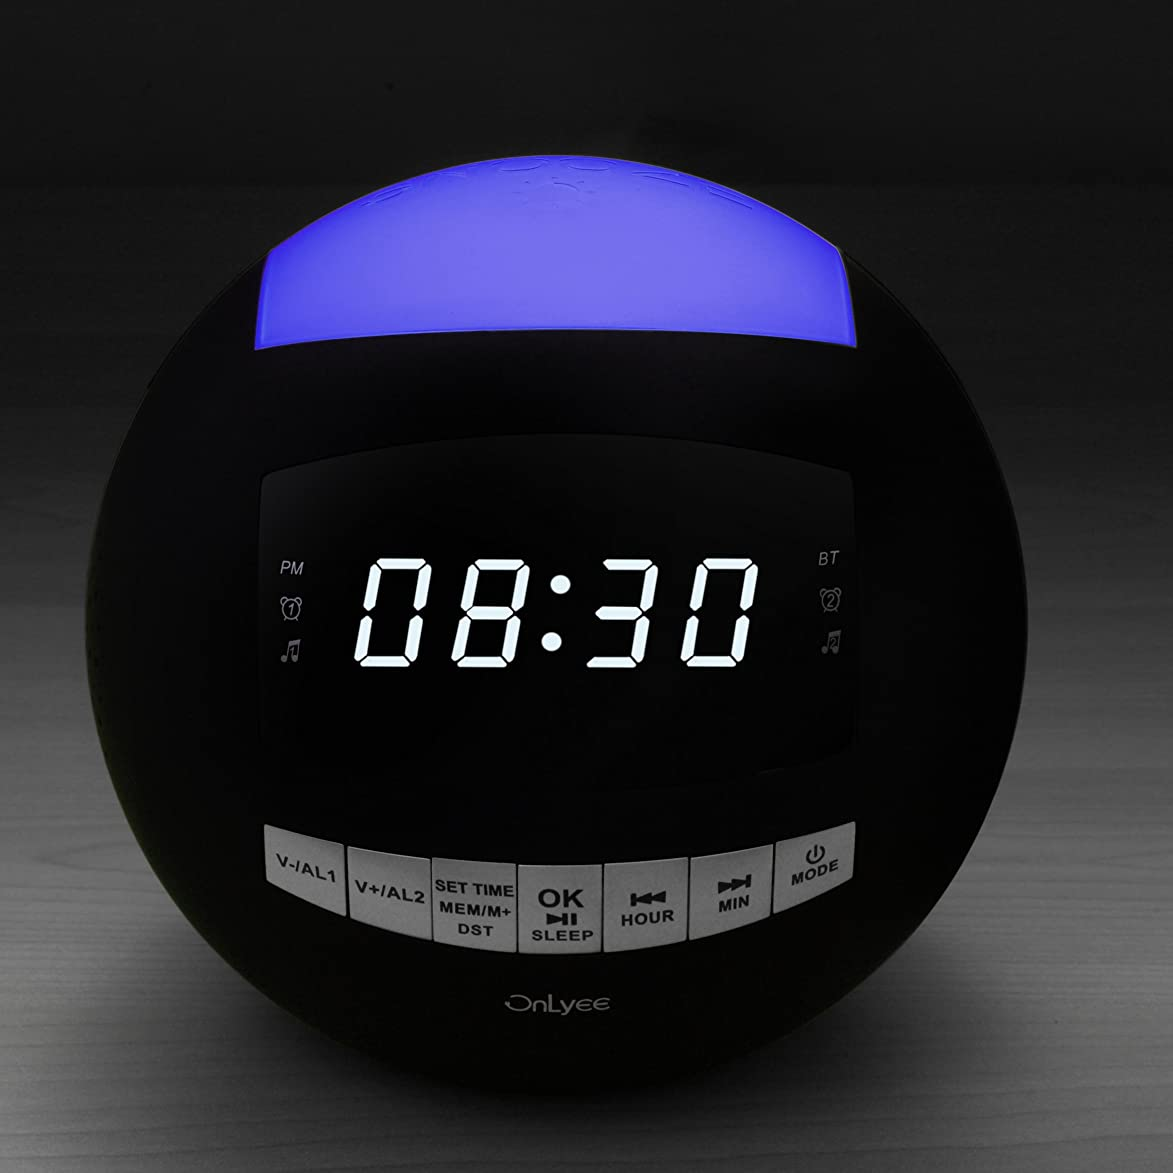 Alarm Clock Radio, Bluetooth Clock, AM FM Radio,USB Chargers, AUX-in, 7 Colored Night Light, Slider Dimmer, Dual Alarms, Sleep Timer, Big Snooze for Bedrooms, Desk, Heavy Sleepers, Kids